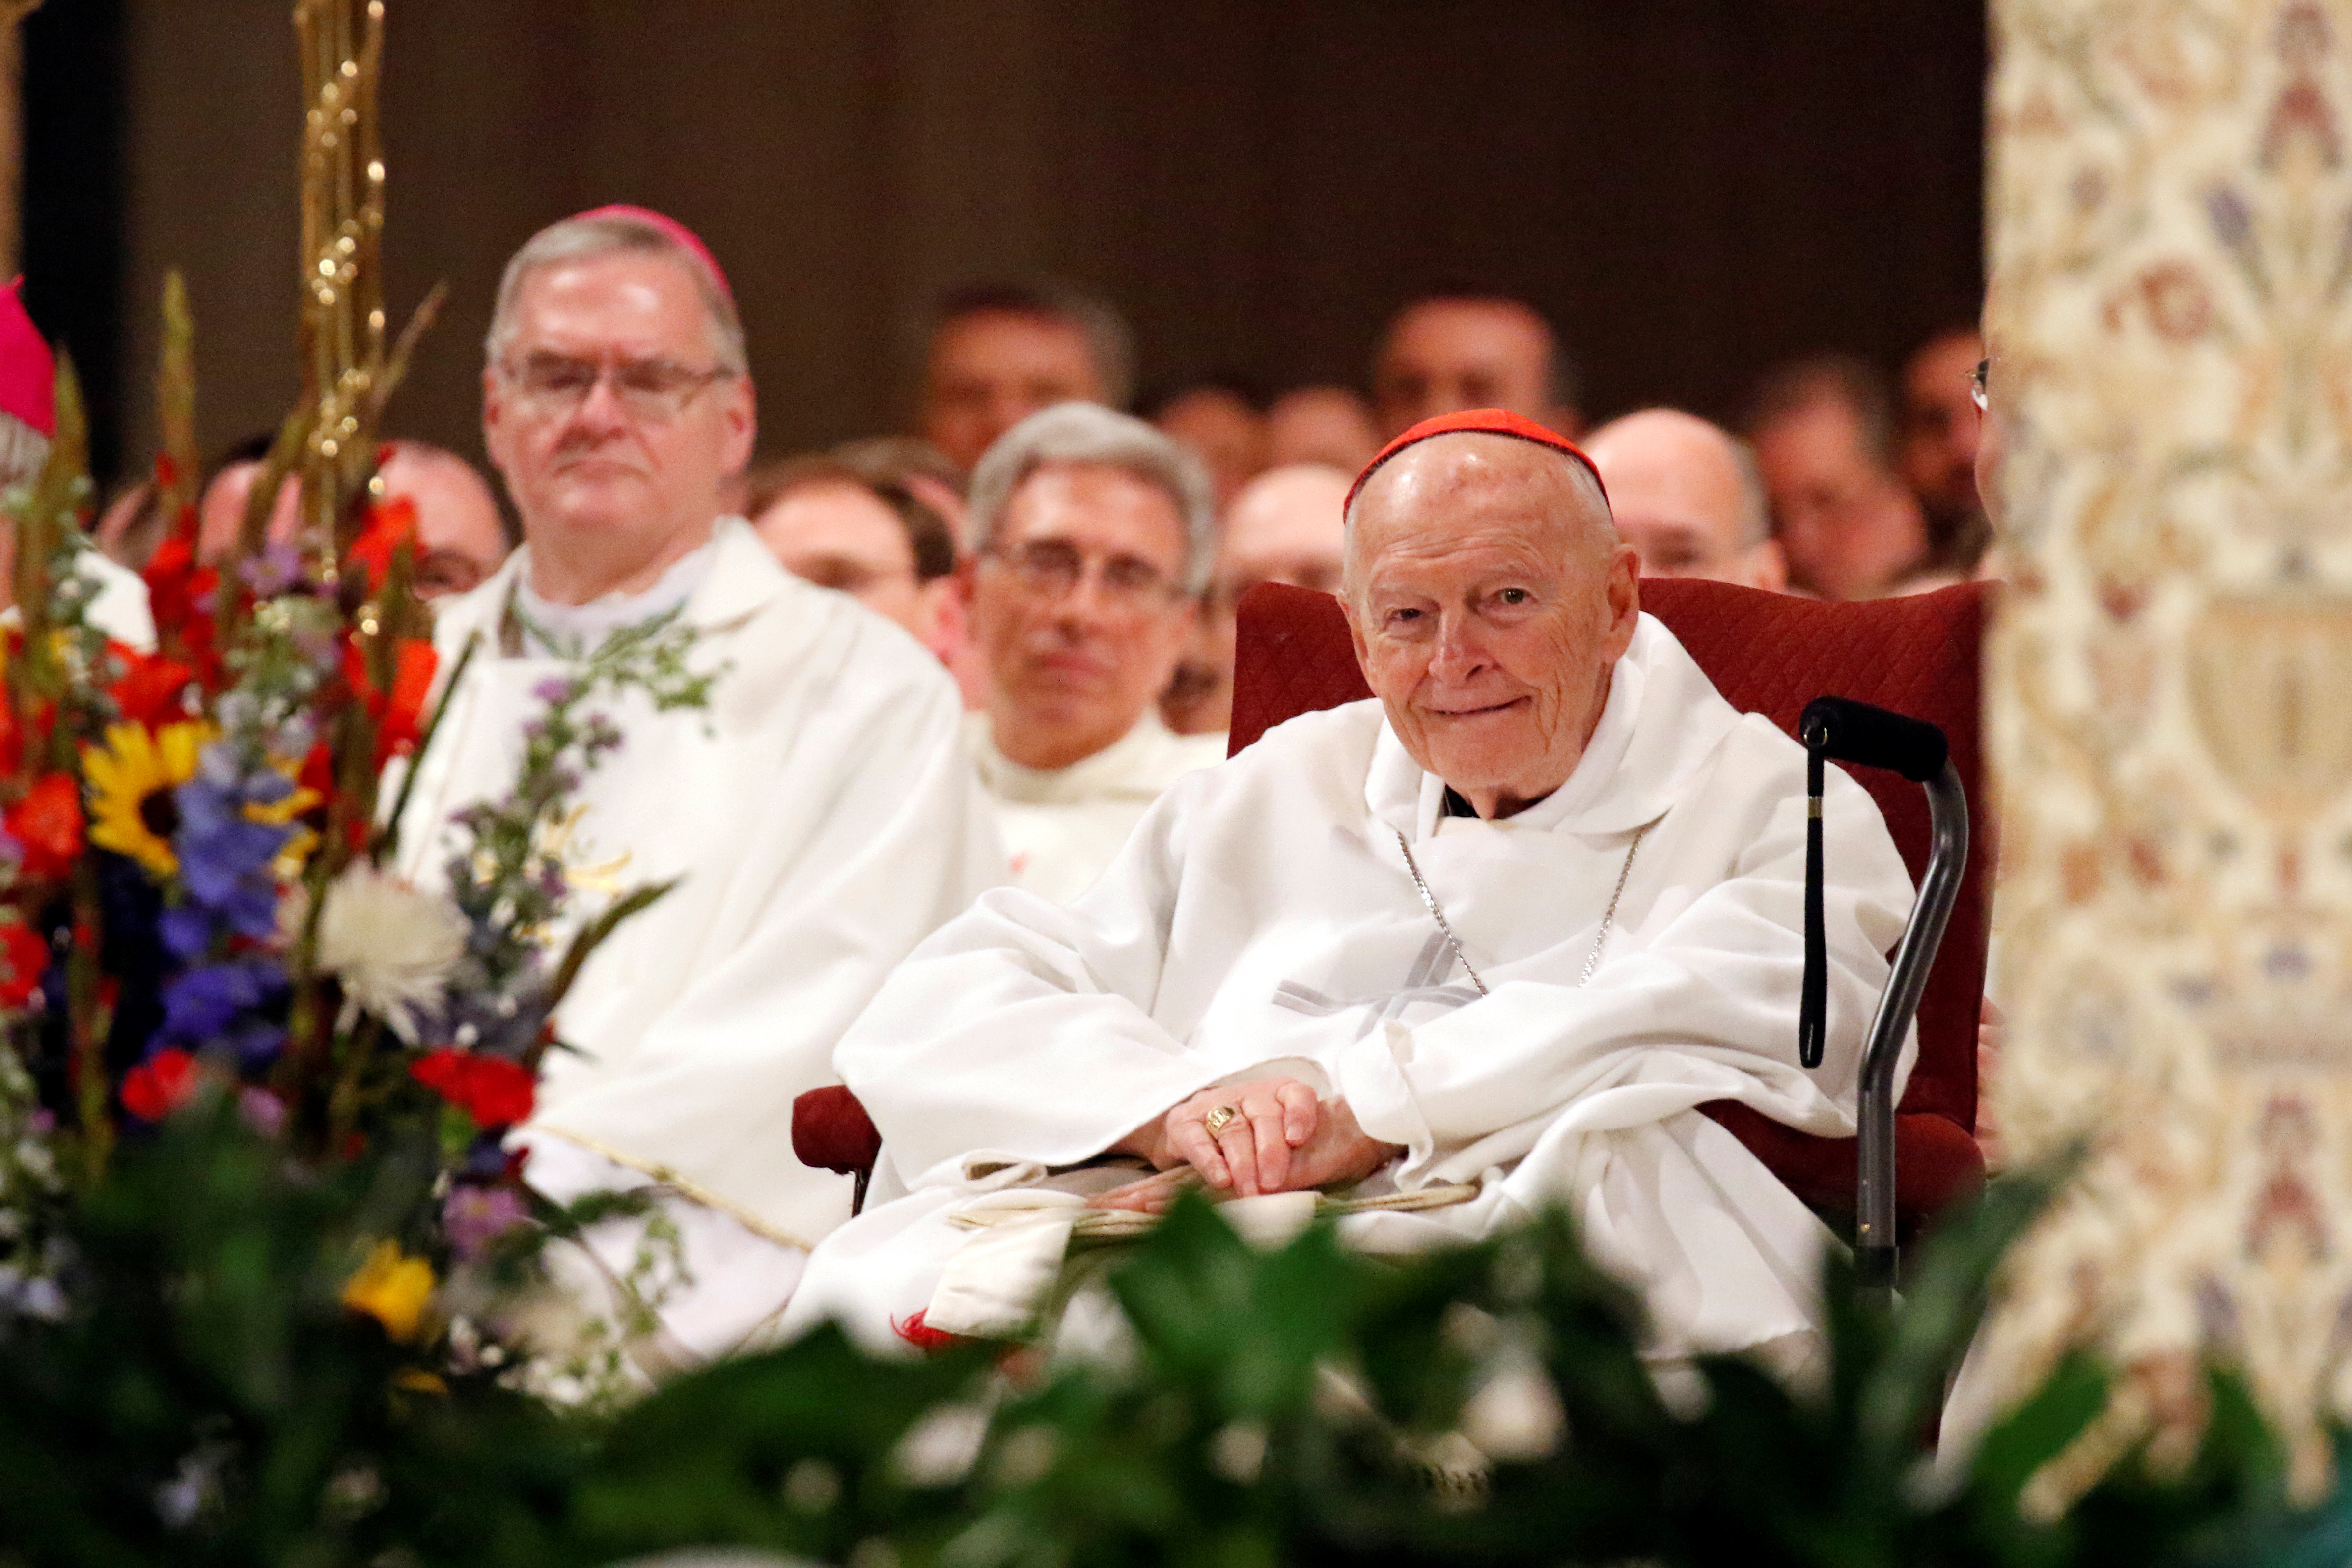 Cardinal Theodore E. McCarrick, retired archbishop of Washington, is seen during a Mass at Basilica of the National Shrine of the Immaculate Conception in Washington, U.S., January 26, 2017. Picture taken January 26, 2017.   REUTERS/Gregory A. Shemitz